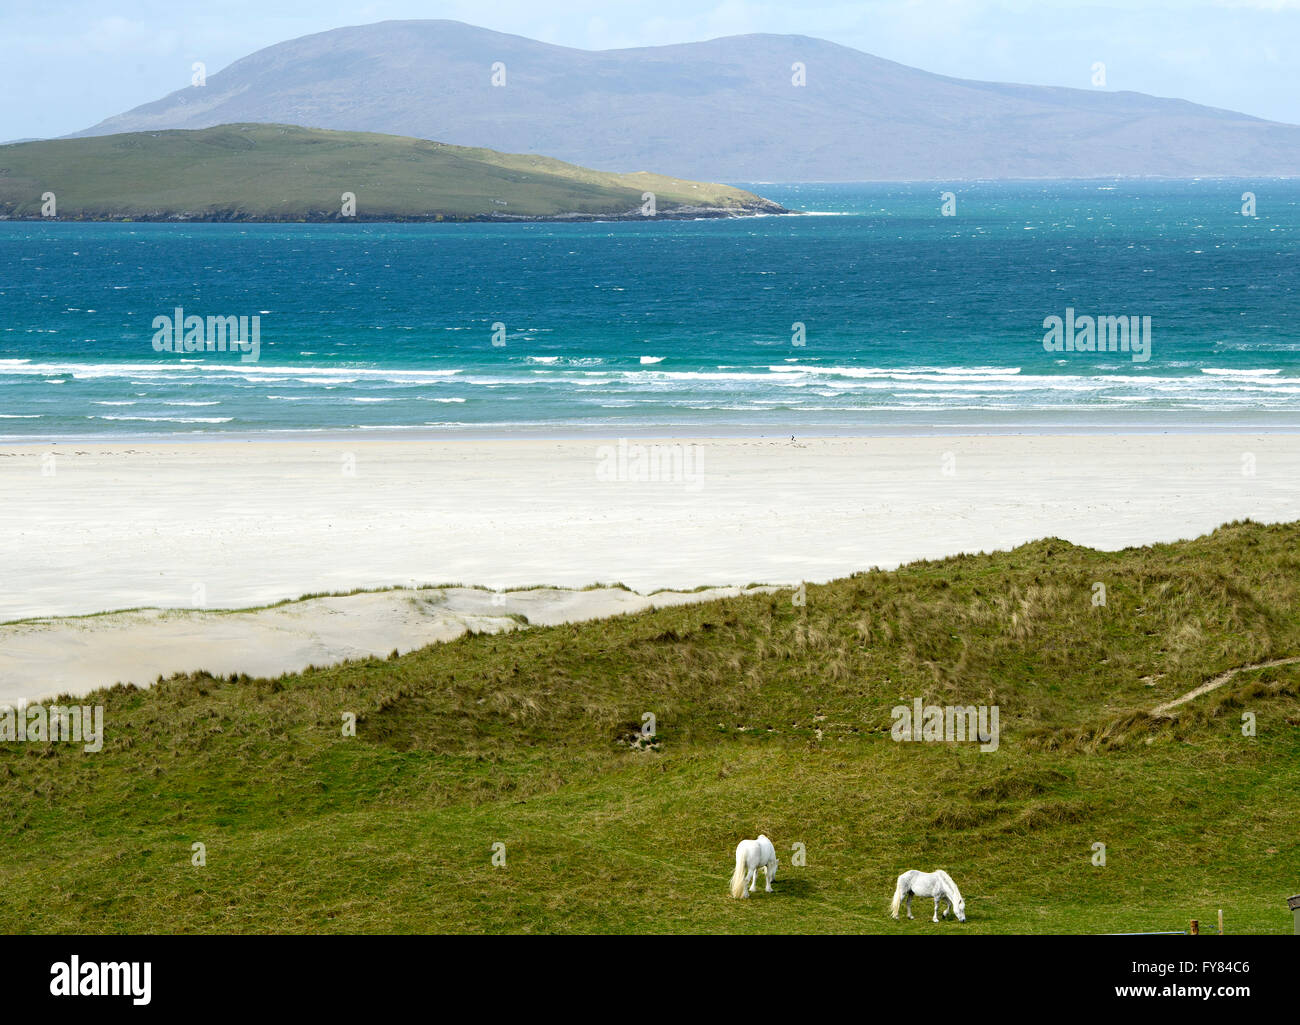 White horses graze on the dunes near Luskentyre beach Isle of Harris Scotland, UK. - Stock Image